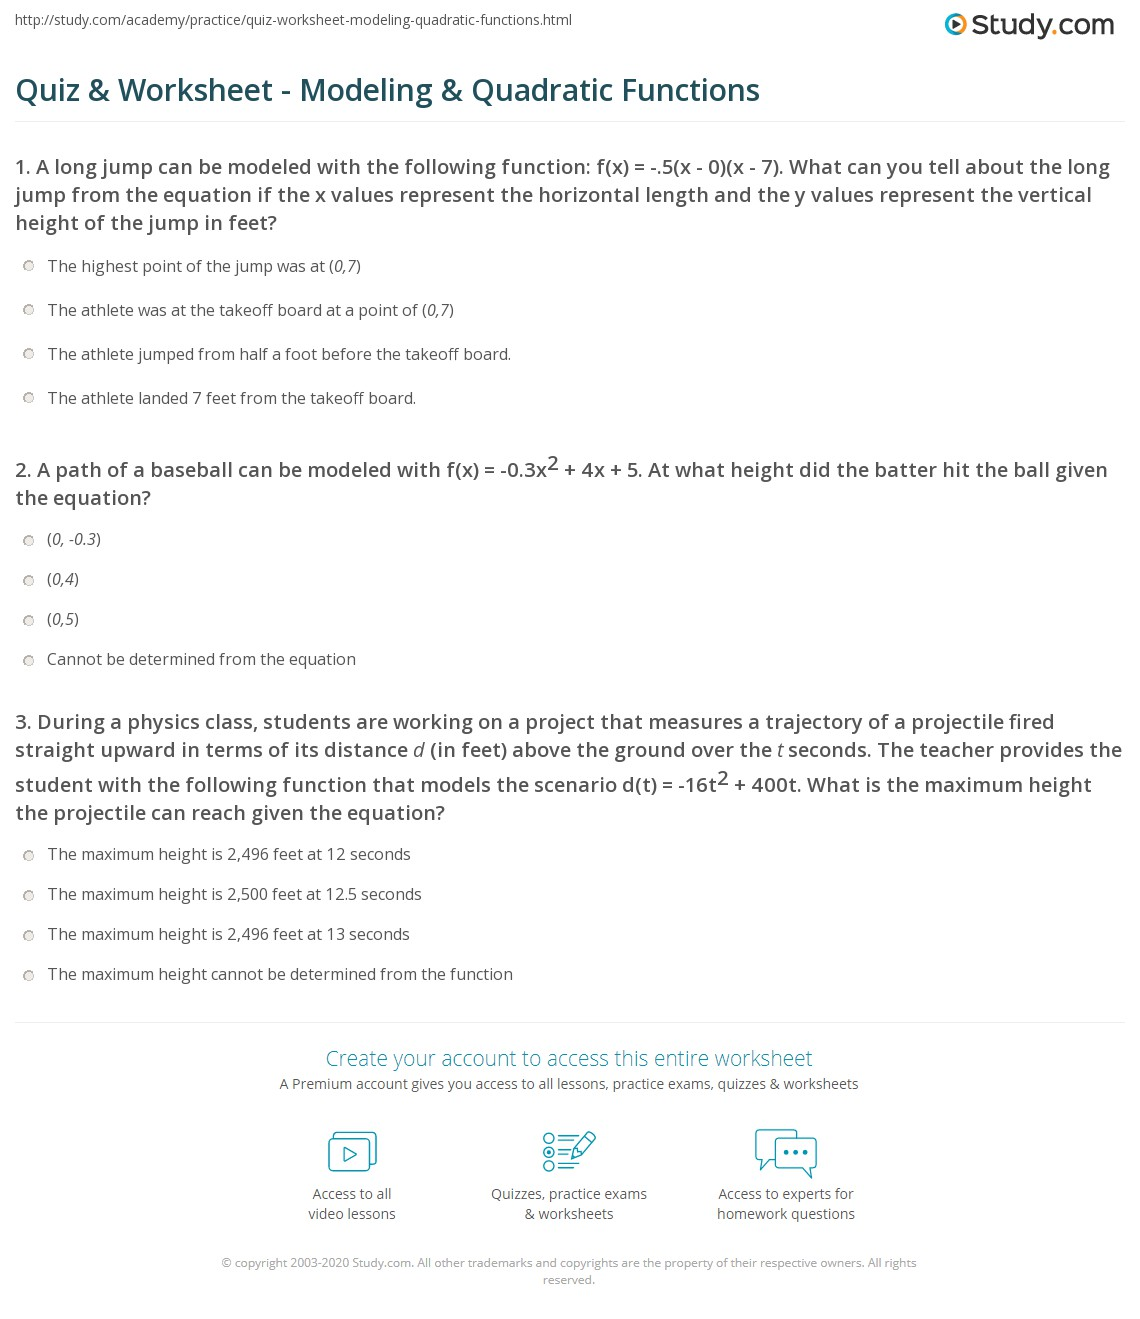 Quiz & Worksheet - Modeling & Quadratic Functions | Study com